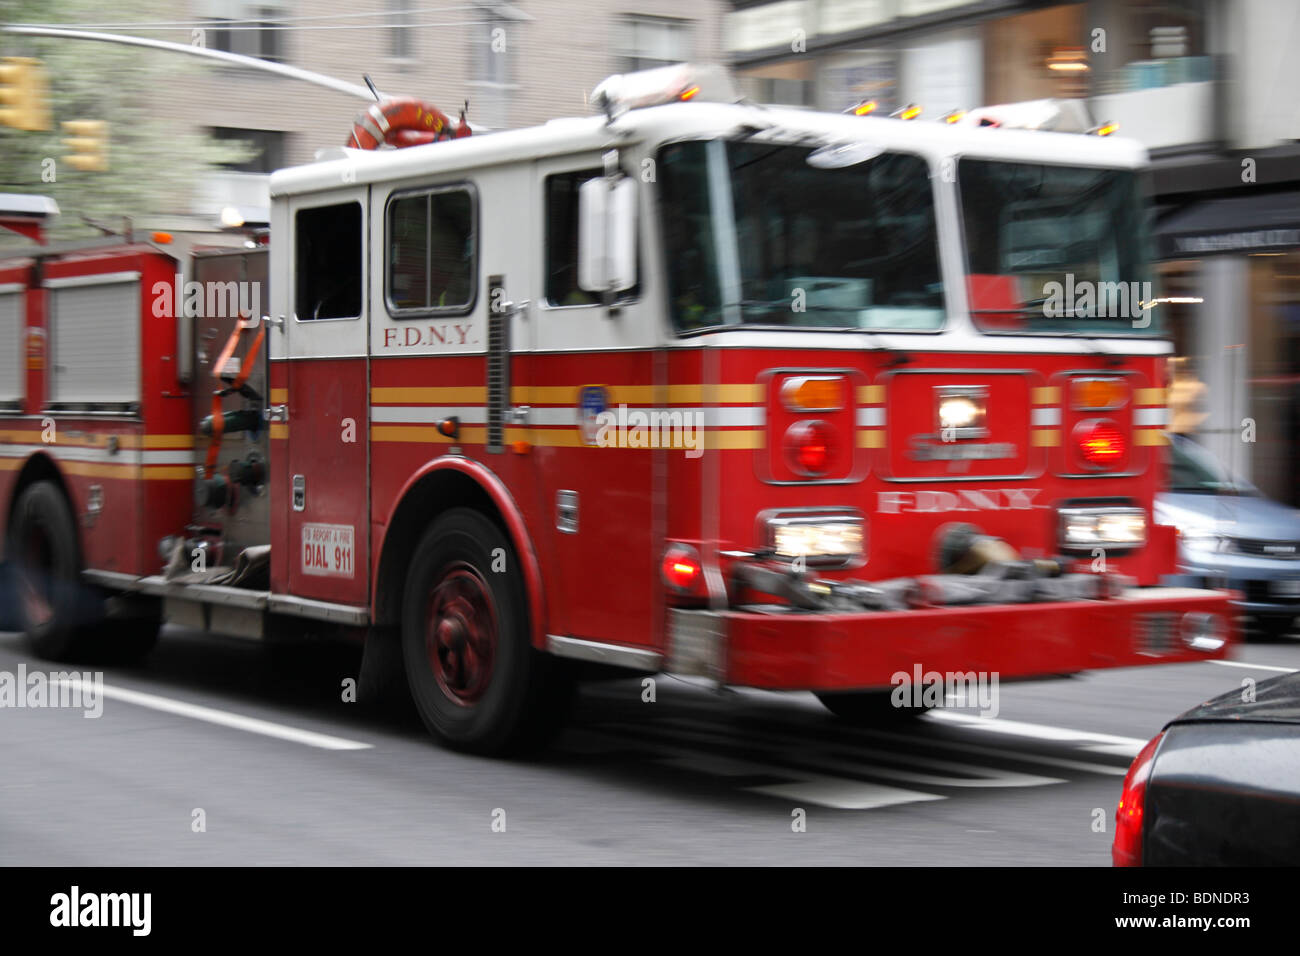 A fast moving (and BLURRY) Fire Department New York fire truck passing on a busy street, New York, United States - Stock Image